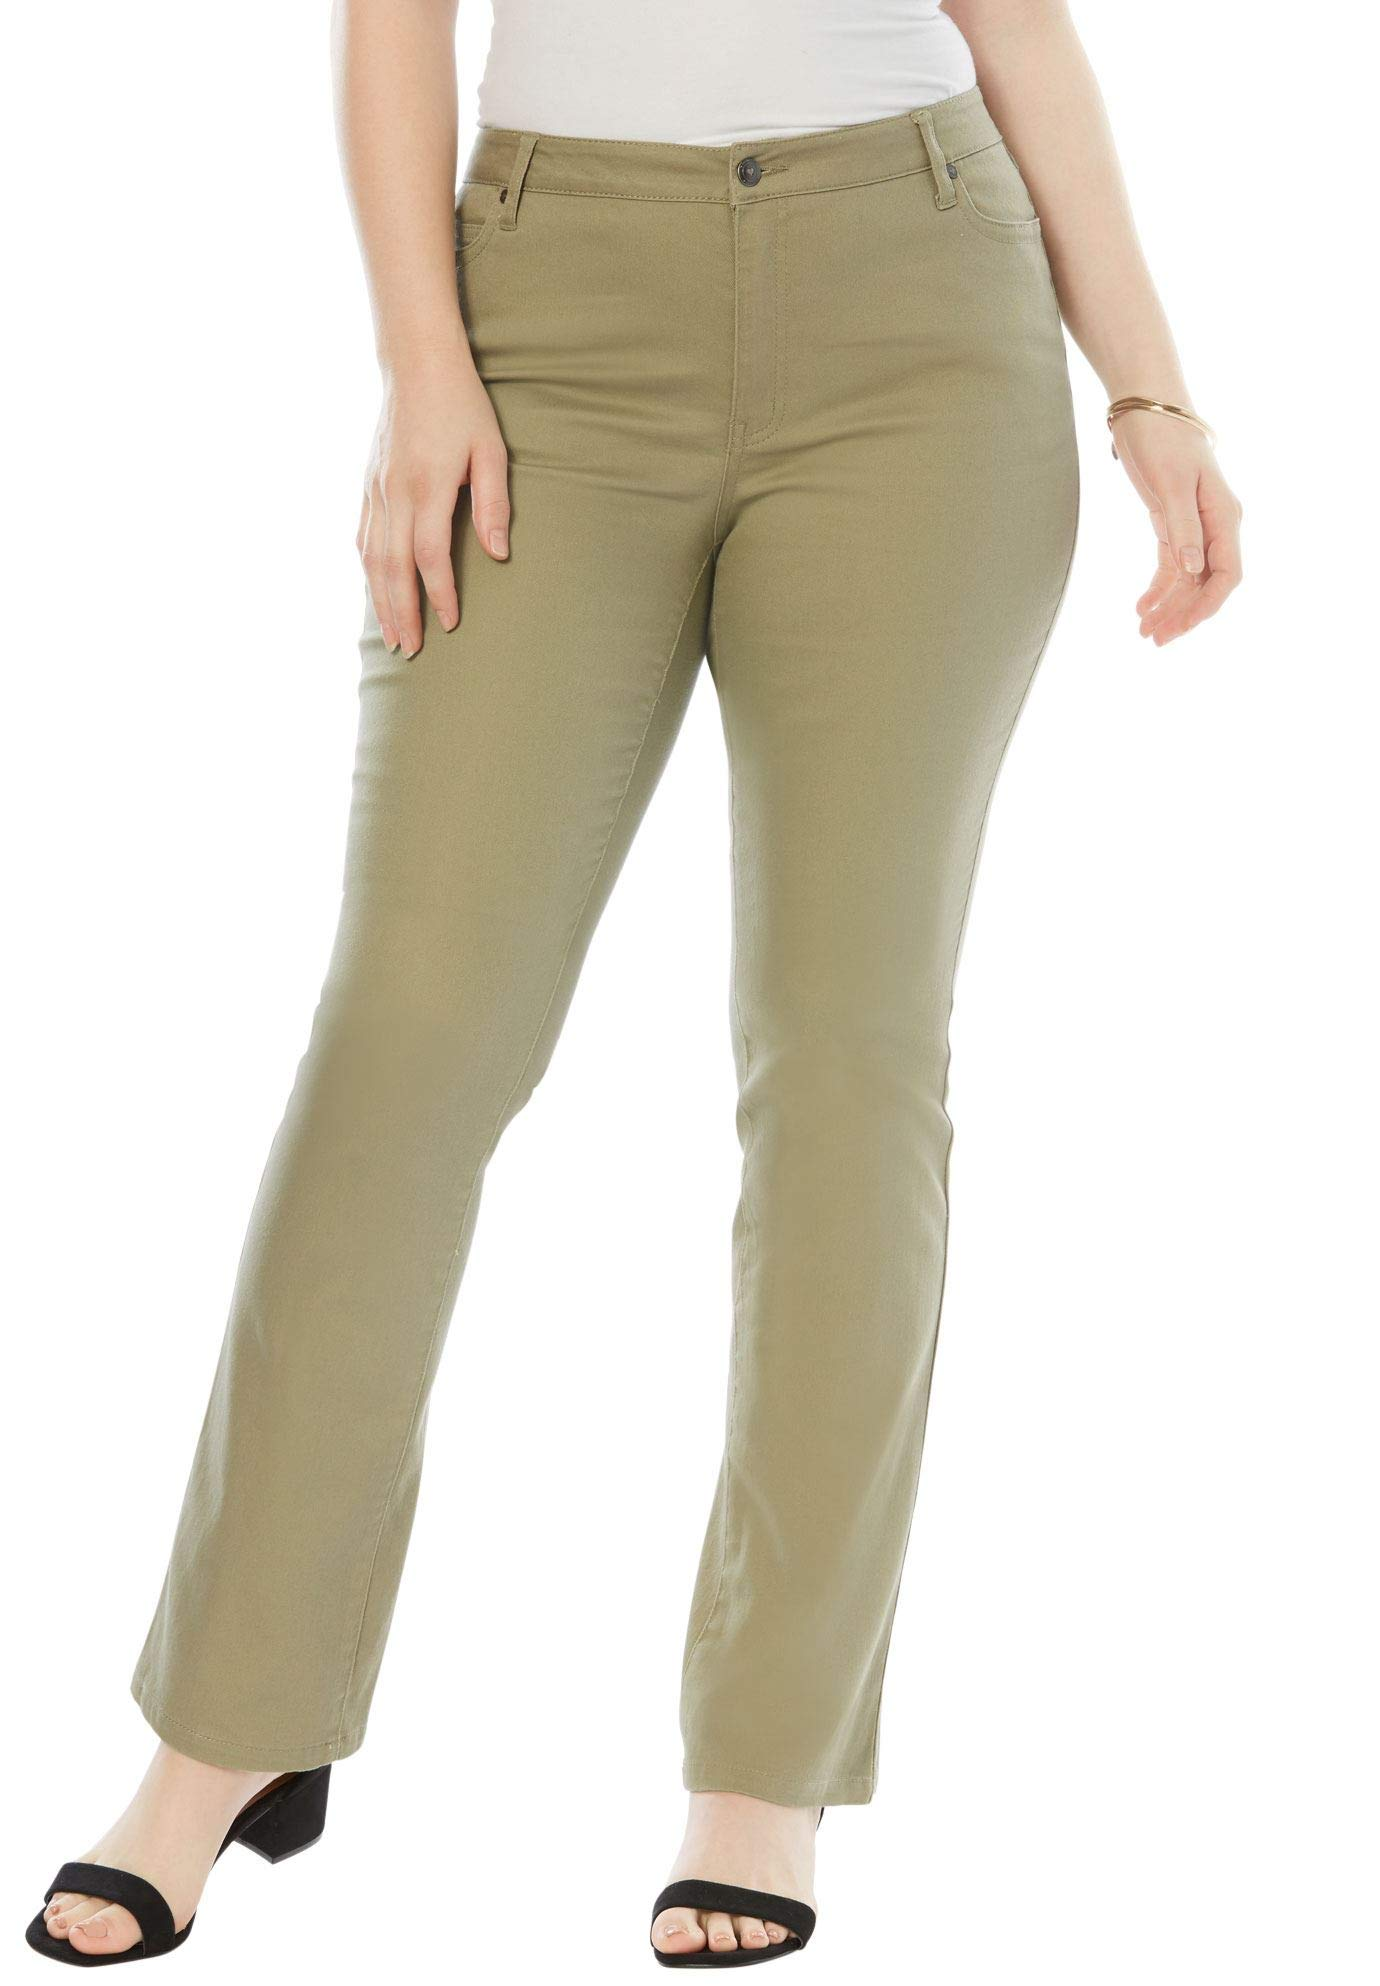 Roamans Women's Plus Size 5-Pocket Bootcut Jeans with Invisible Stretch